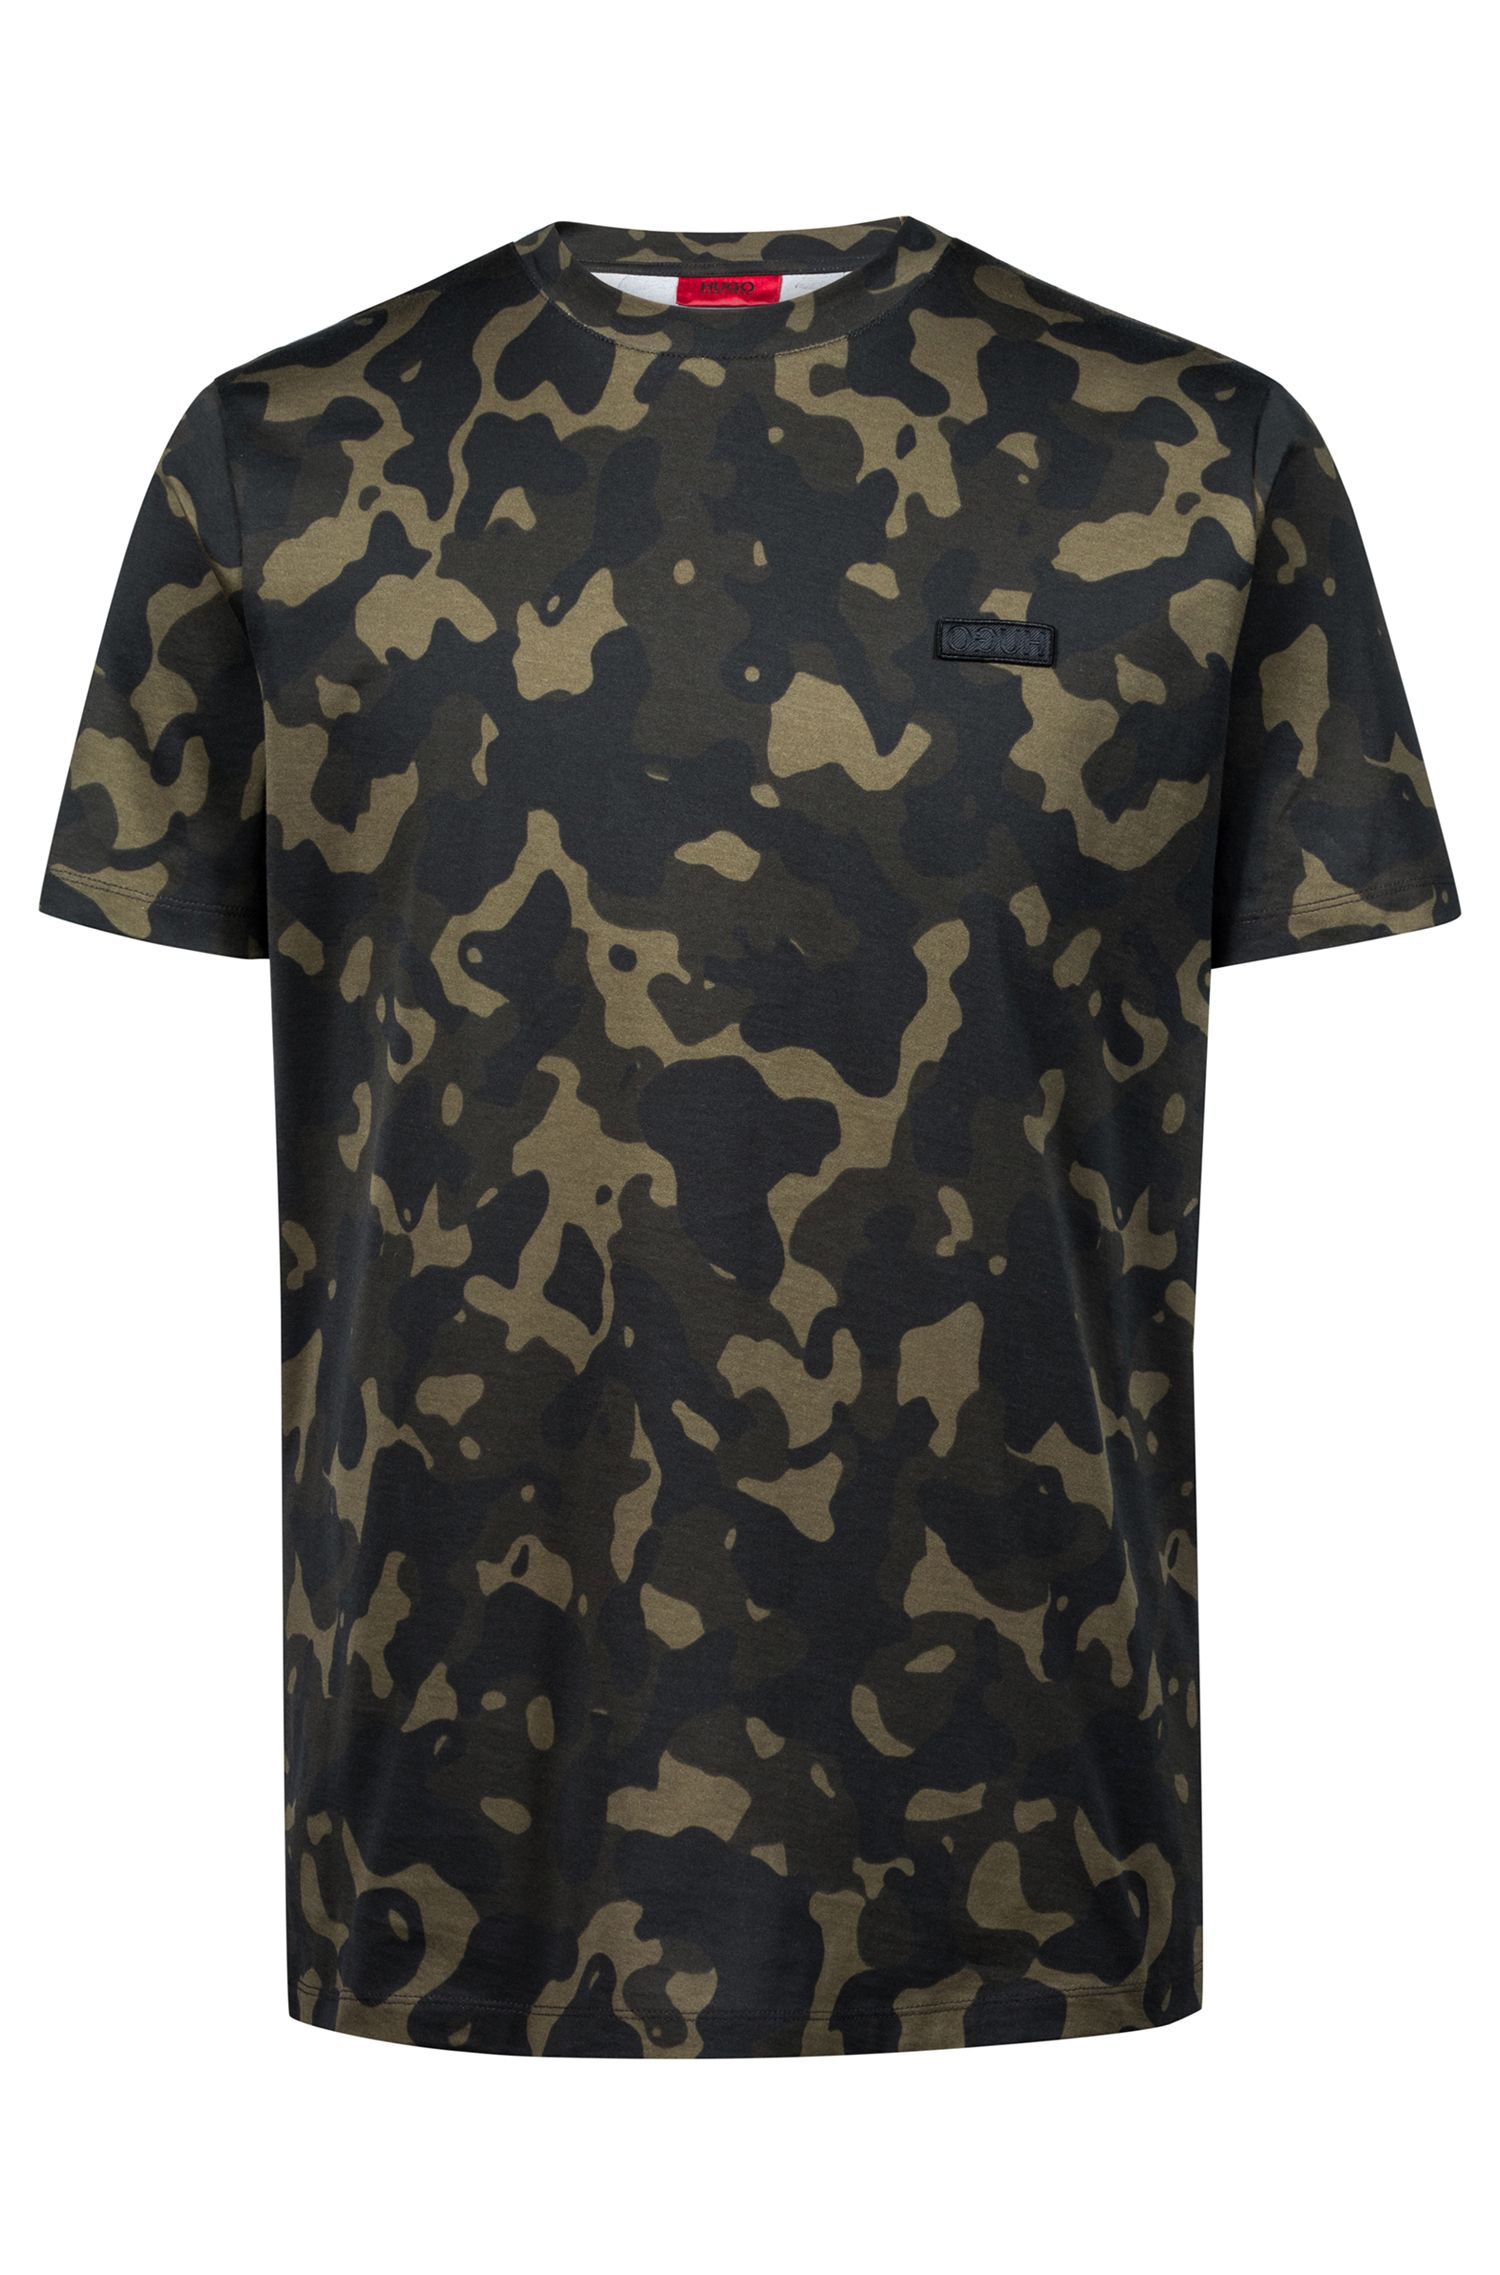 T-shirt relaxed fit in puro cotone con stampa camouflage